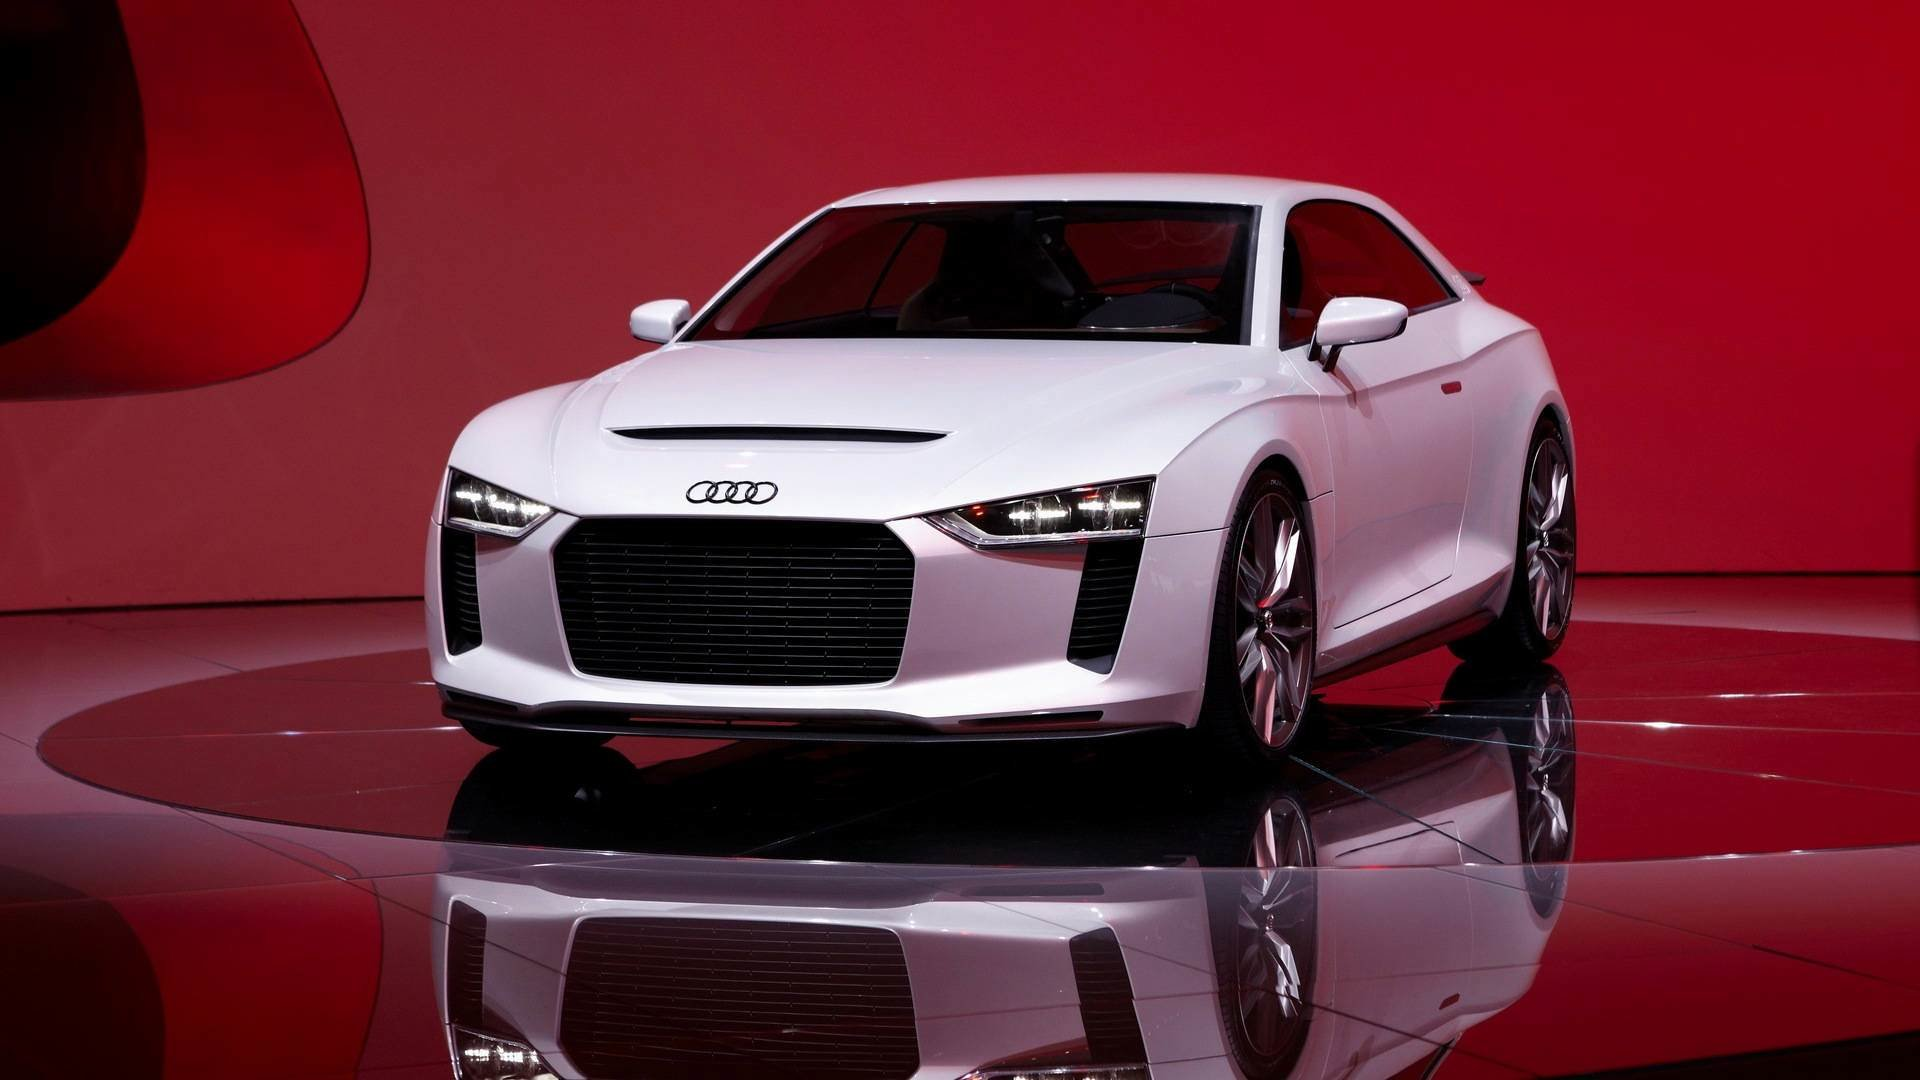 Latest Wallpaper Audi Cars Hd Wallpapers Free Download